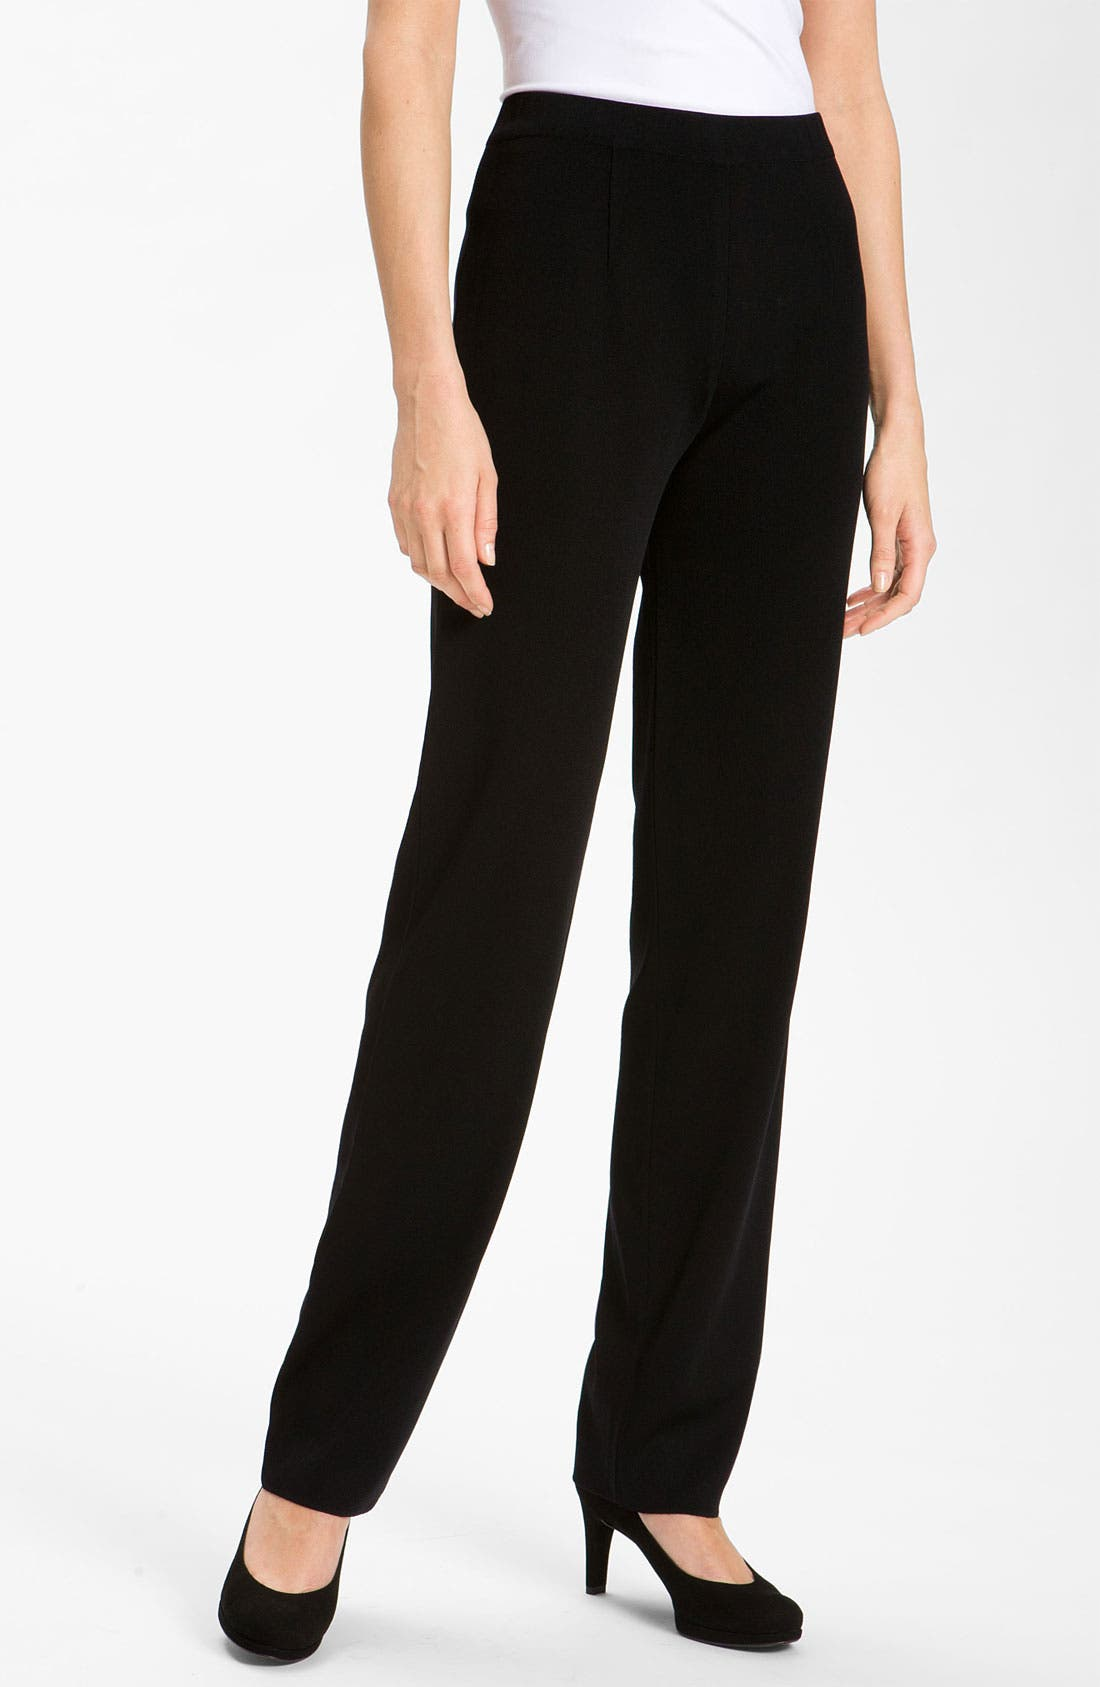 Main Image - Misook Slim Knit Pants (Regular & Petite) (Online Only)